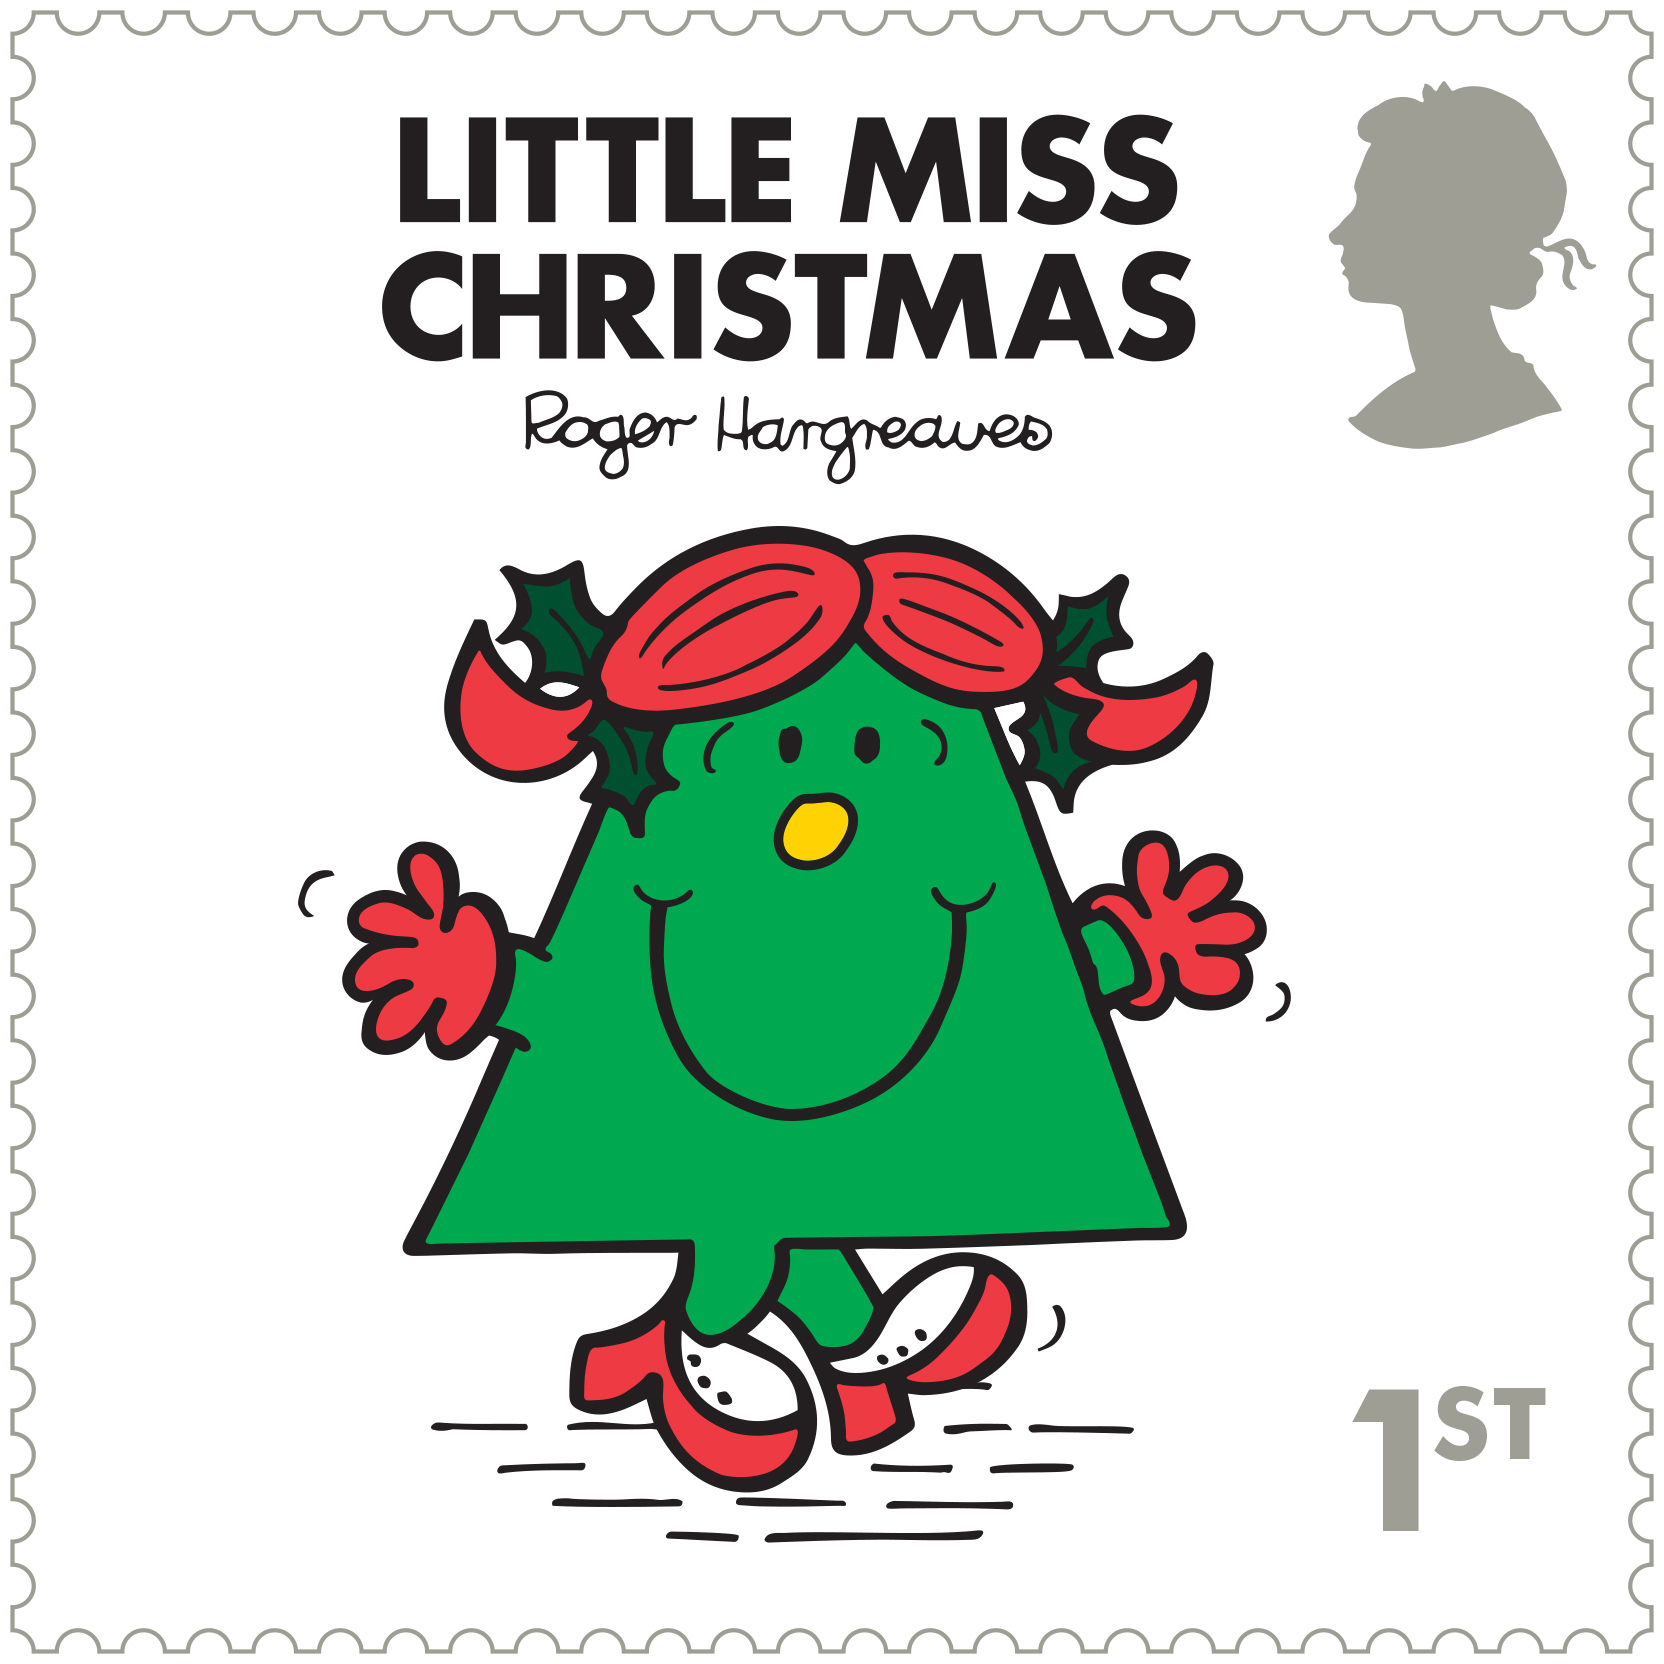 Mr Men and Little Miss stamps - Little Miss Christmas (Royal Mail/PA)